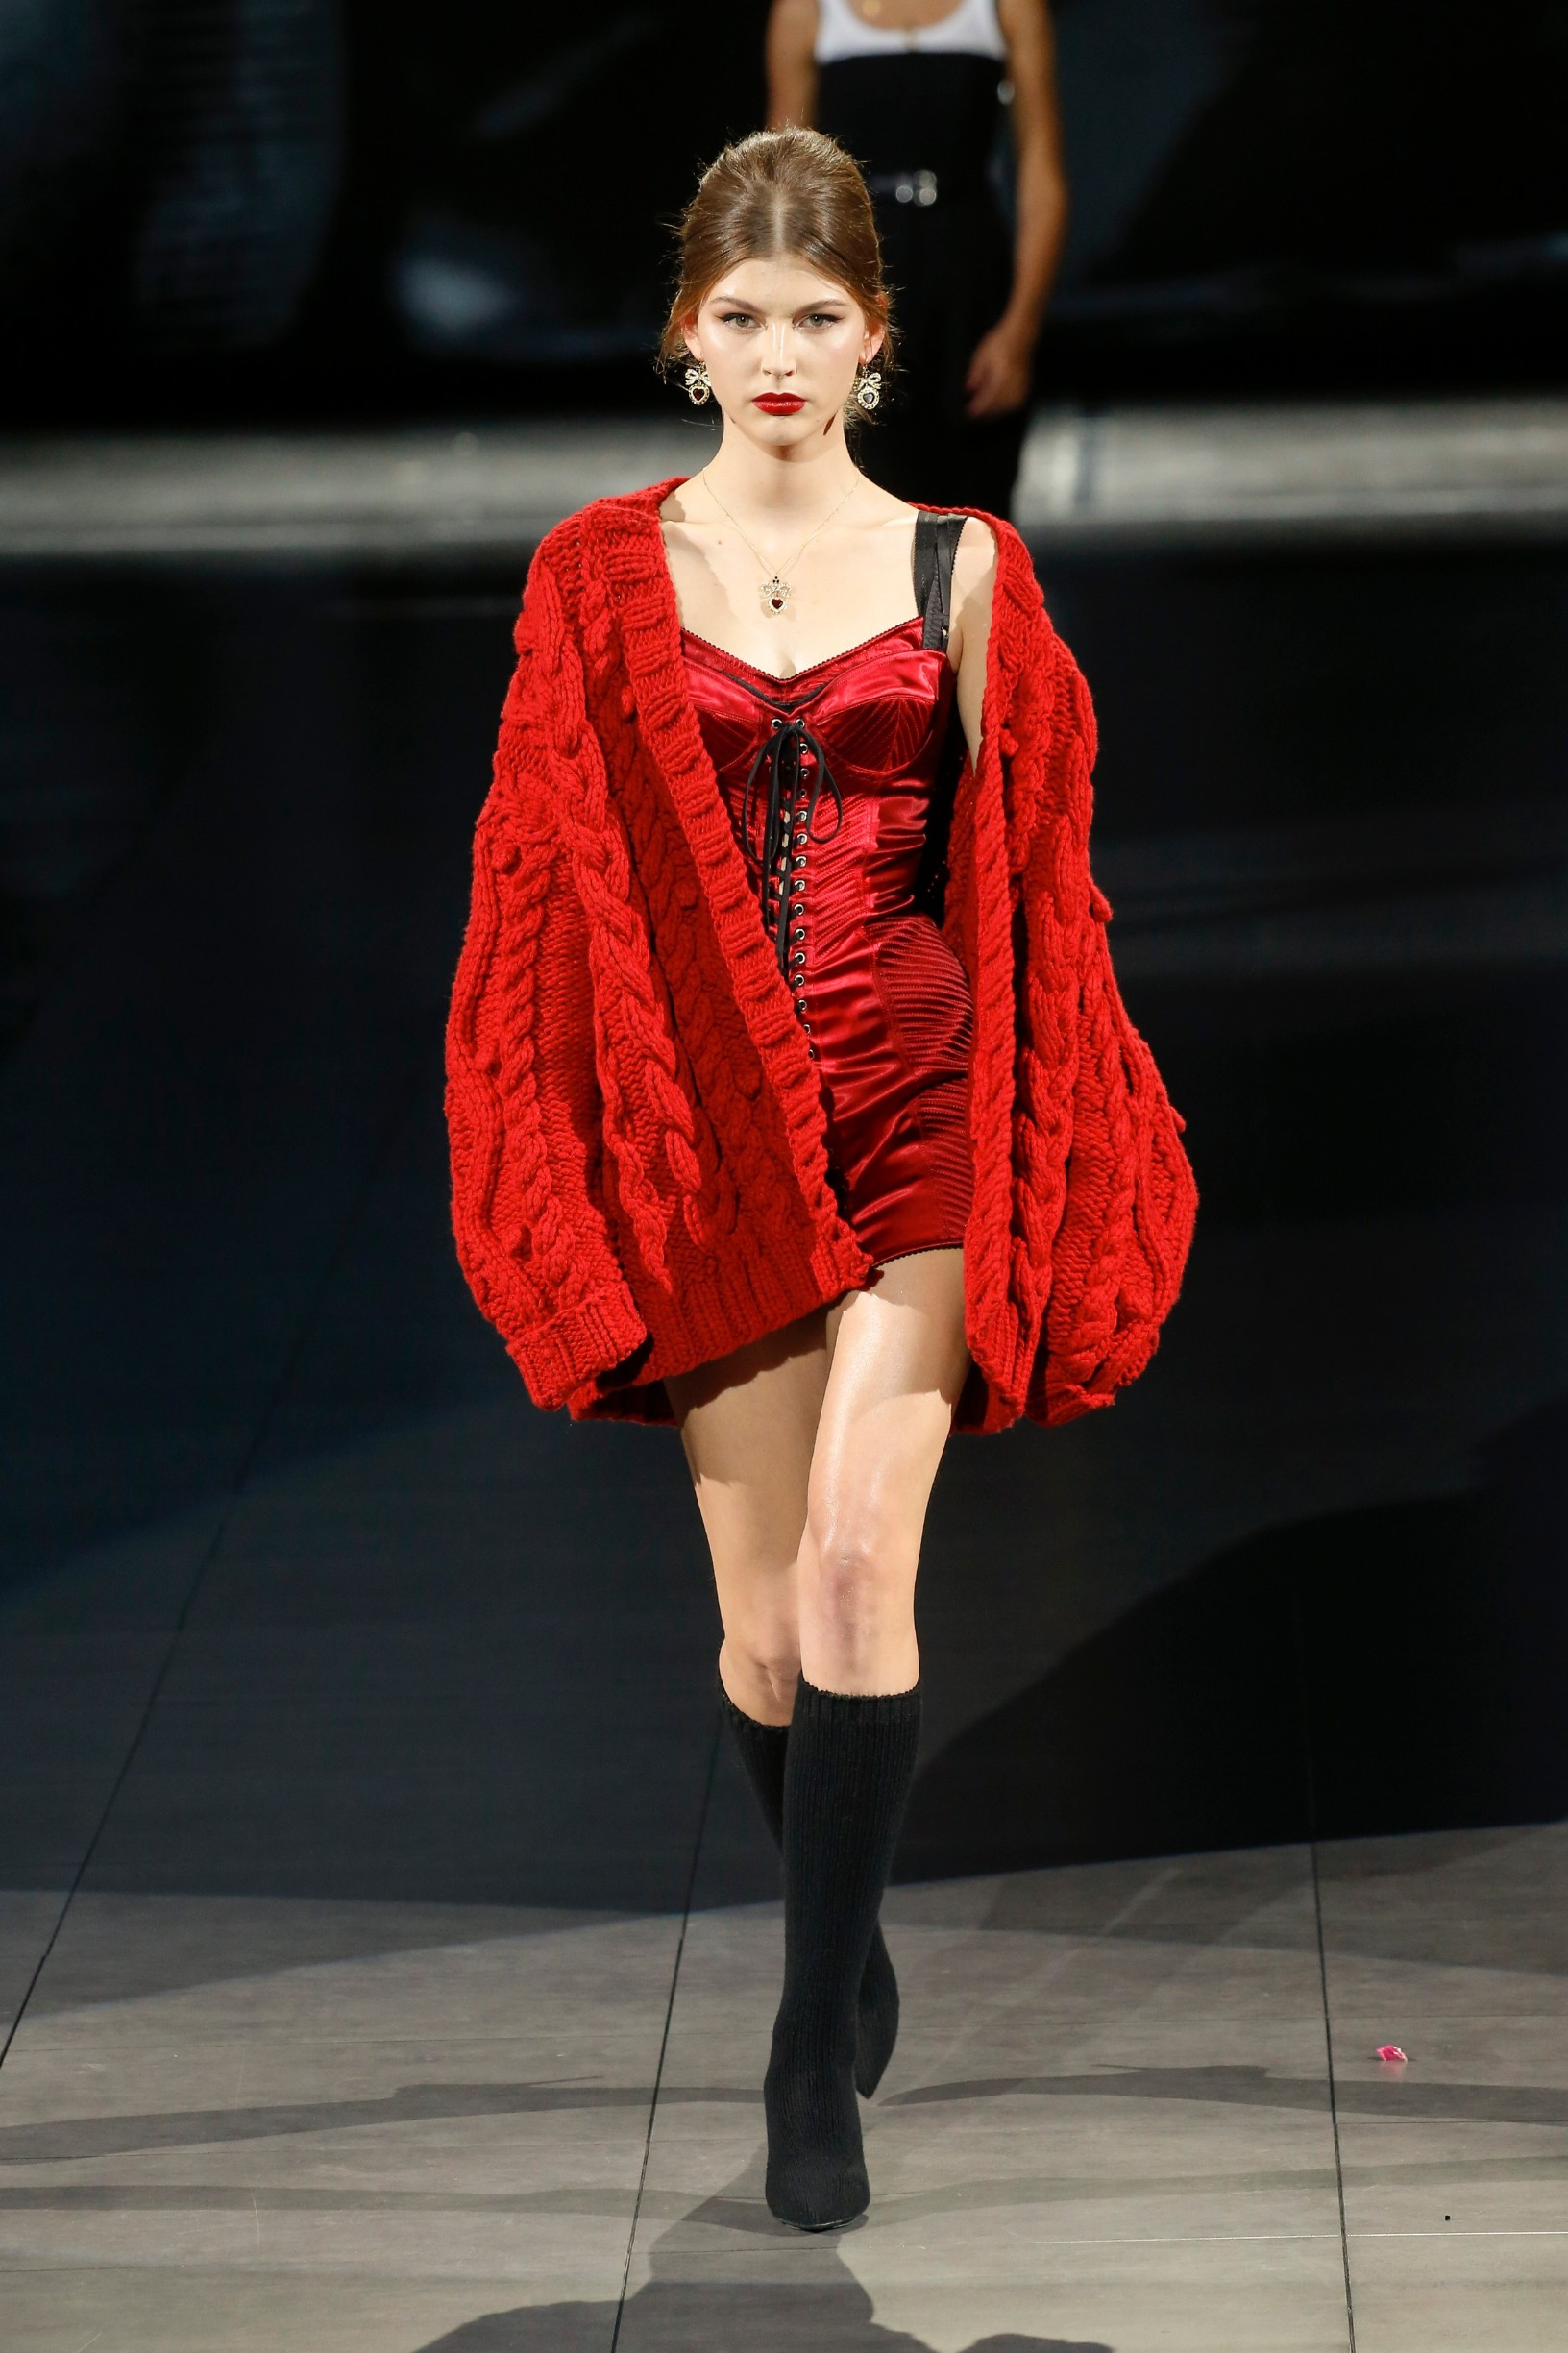 Model walks on the runway at the Dolce and Gabbana fashion show during Fall / Winter 2020 / 2021 Milan Fashion Week in Milan, Italy on Feb. 23, 2020., Image: 500556580, License: Rights-managed, Restrictions: *** World Rights ***, Model Release: no, Credit line: Jonas Gustavsson / ddp USA / Profimedia